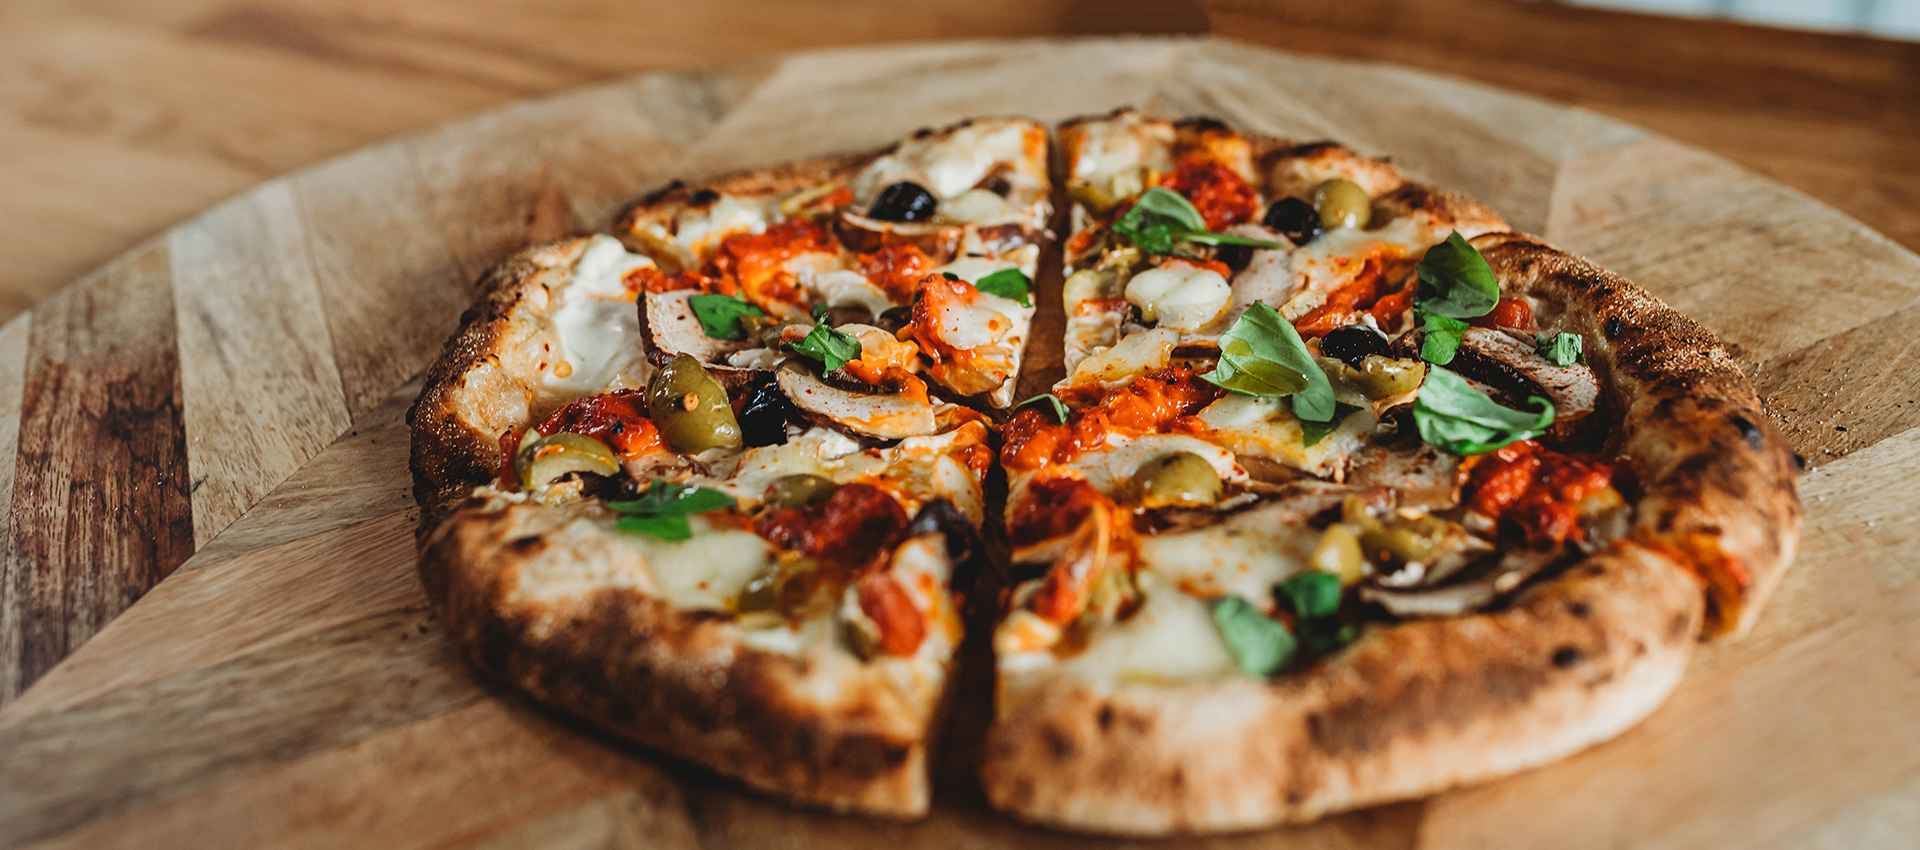 The Best Pizza Starts With Great Dough The Northern Dough Co